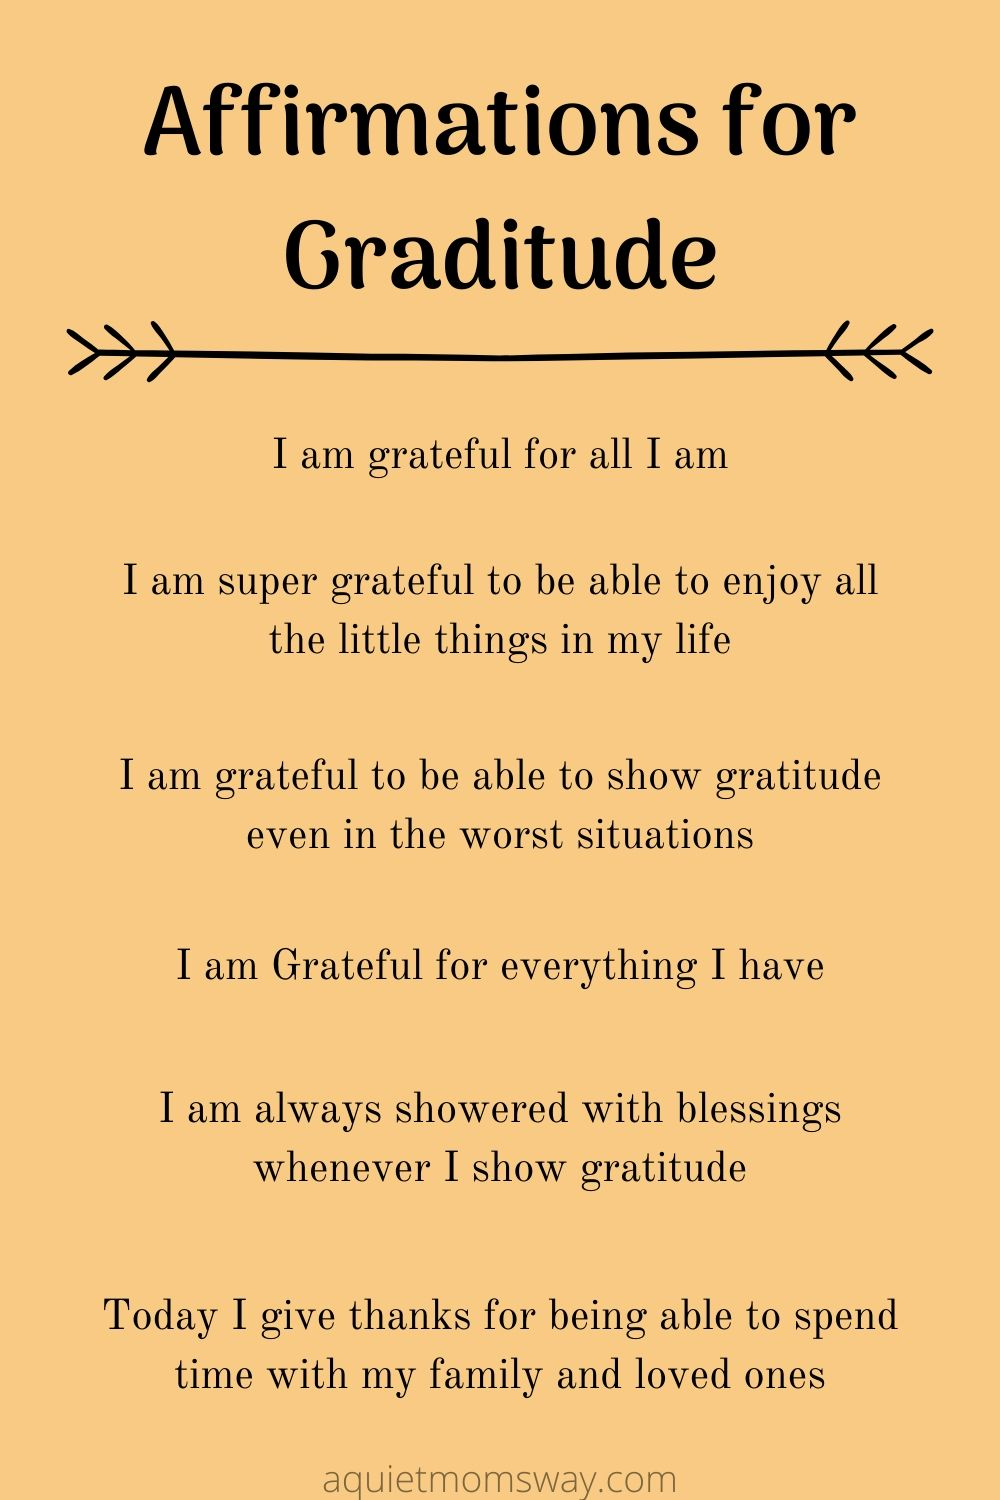 What's so important about Gratitude?